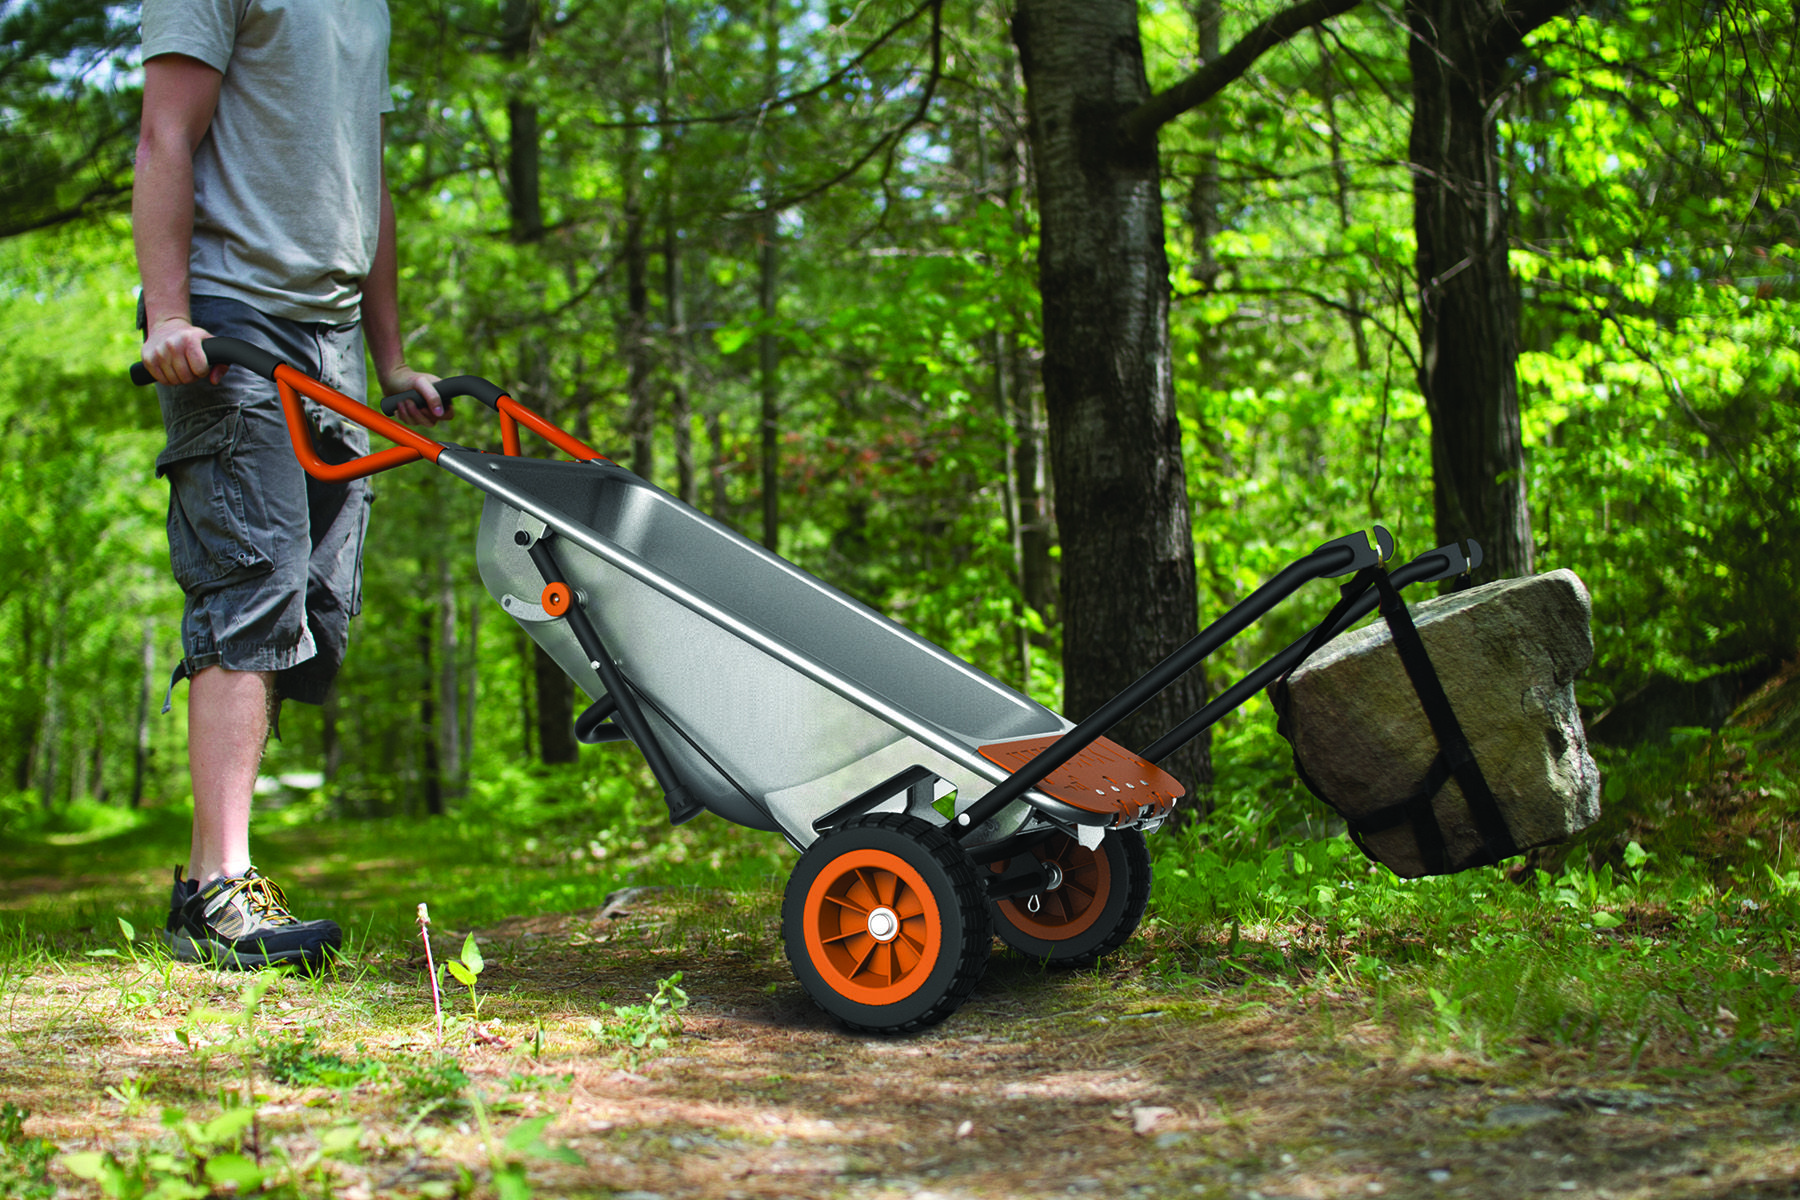 Lift A Heavy Rock By Yourself The Worx Aerocart Makes 200 Lbs Feel Like 17 Lbs Wheelbarrow Yard Cart Cool Things To Buy